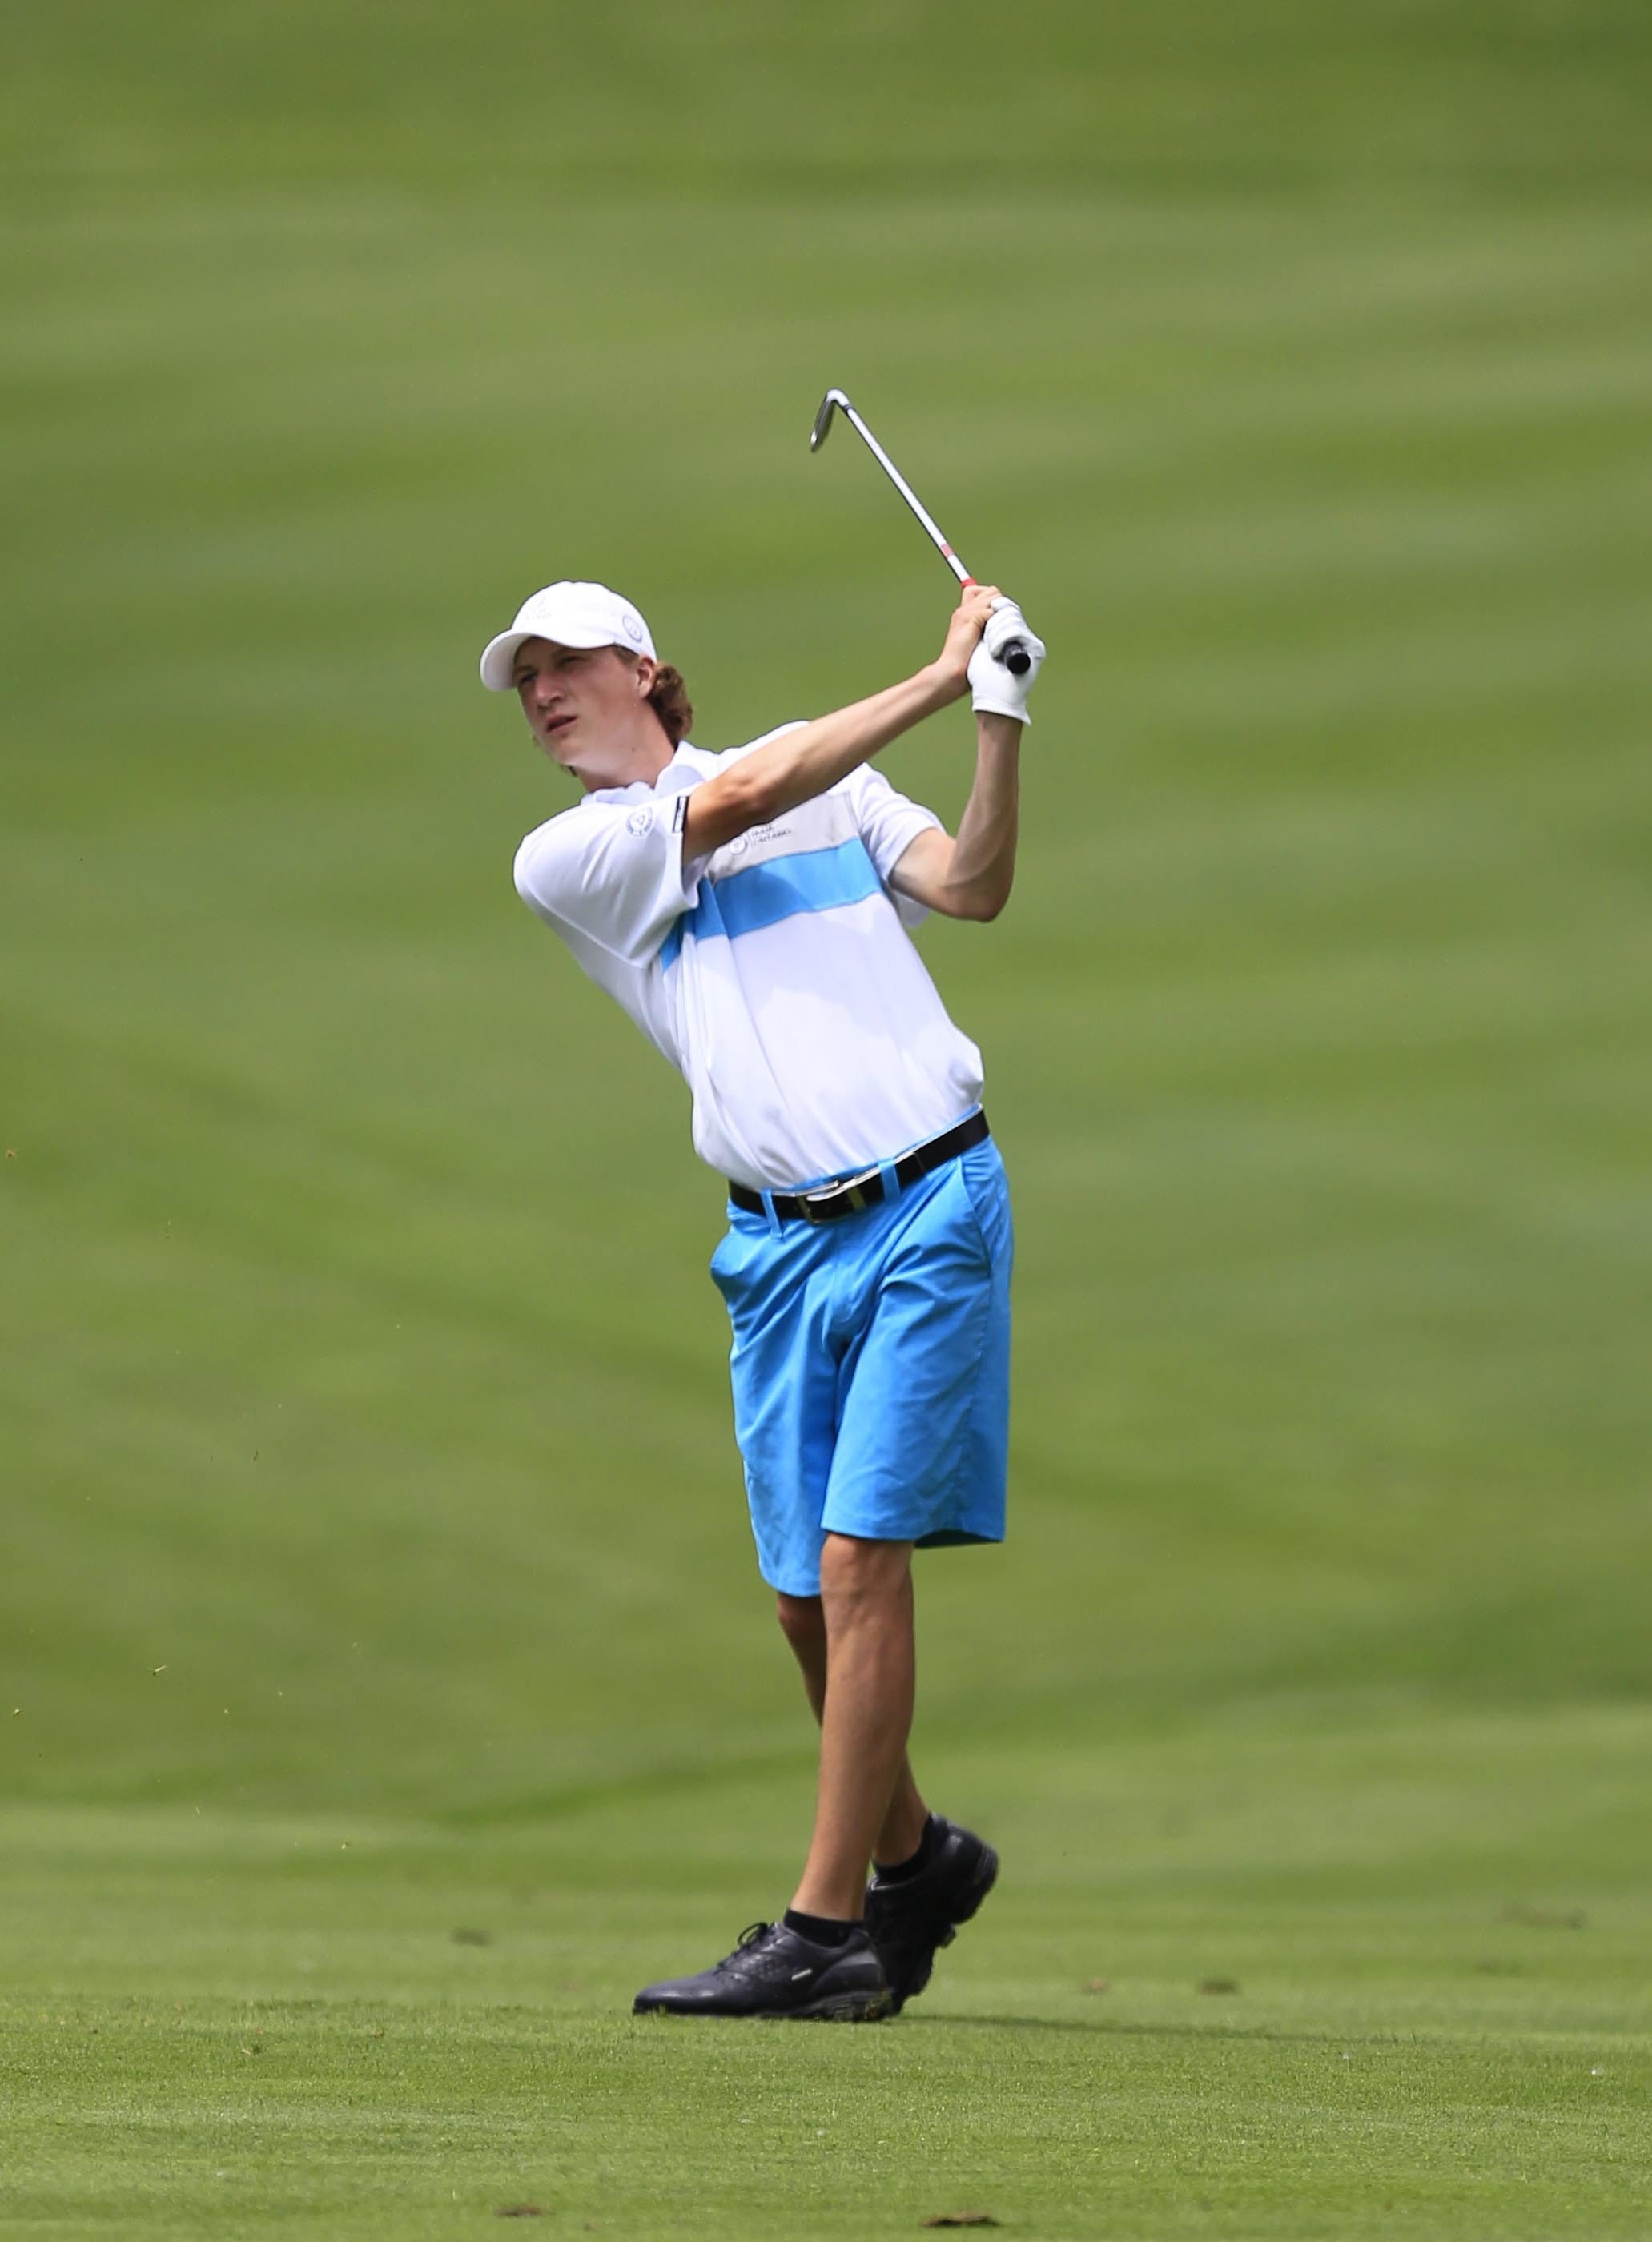 Trevor Ranton ran his match-play winning streak to eight Thursday with a pair of victories at the Junior Masters.